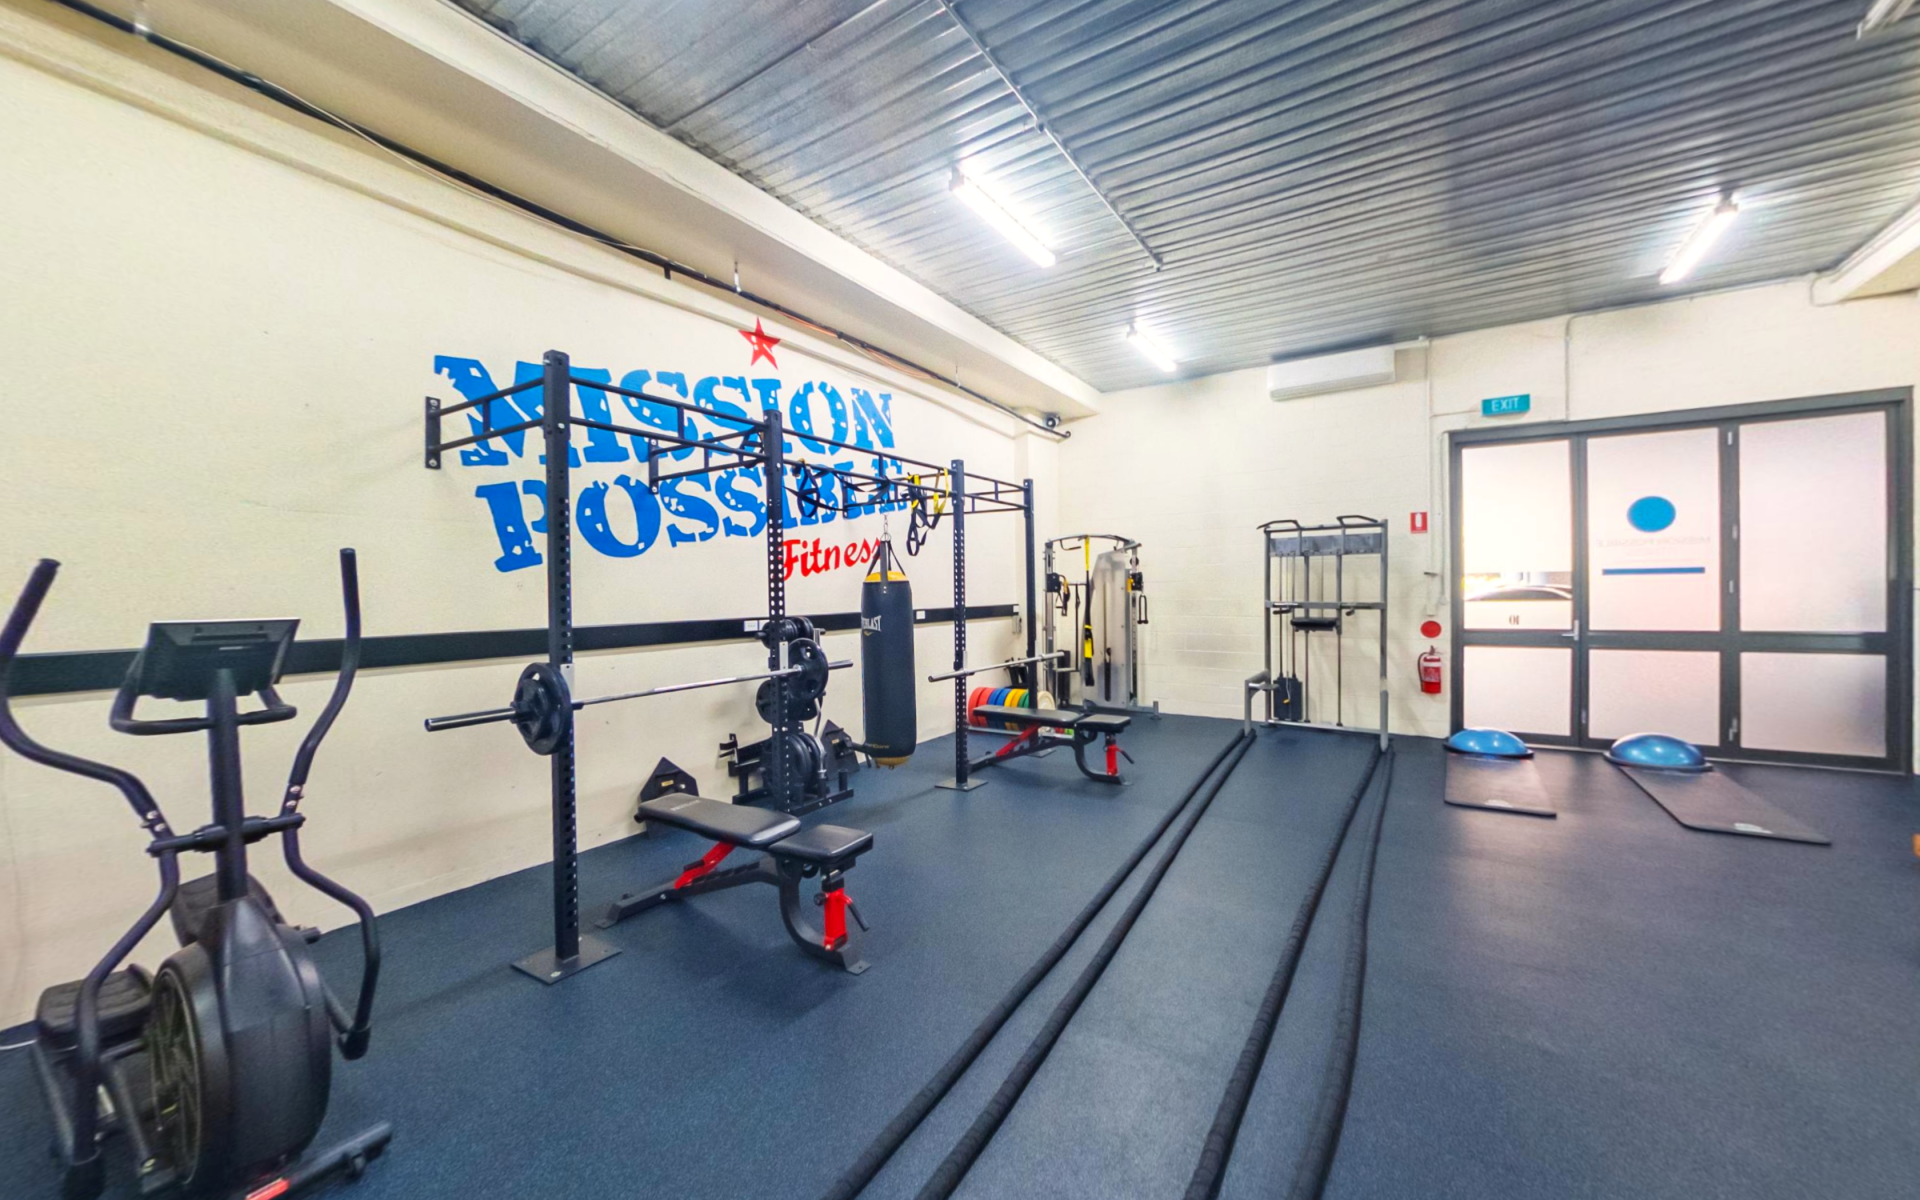 Mission Possible targets 60 studios in 5 years | Inside Franchise Business